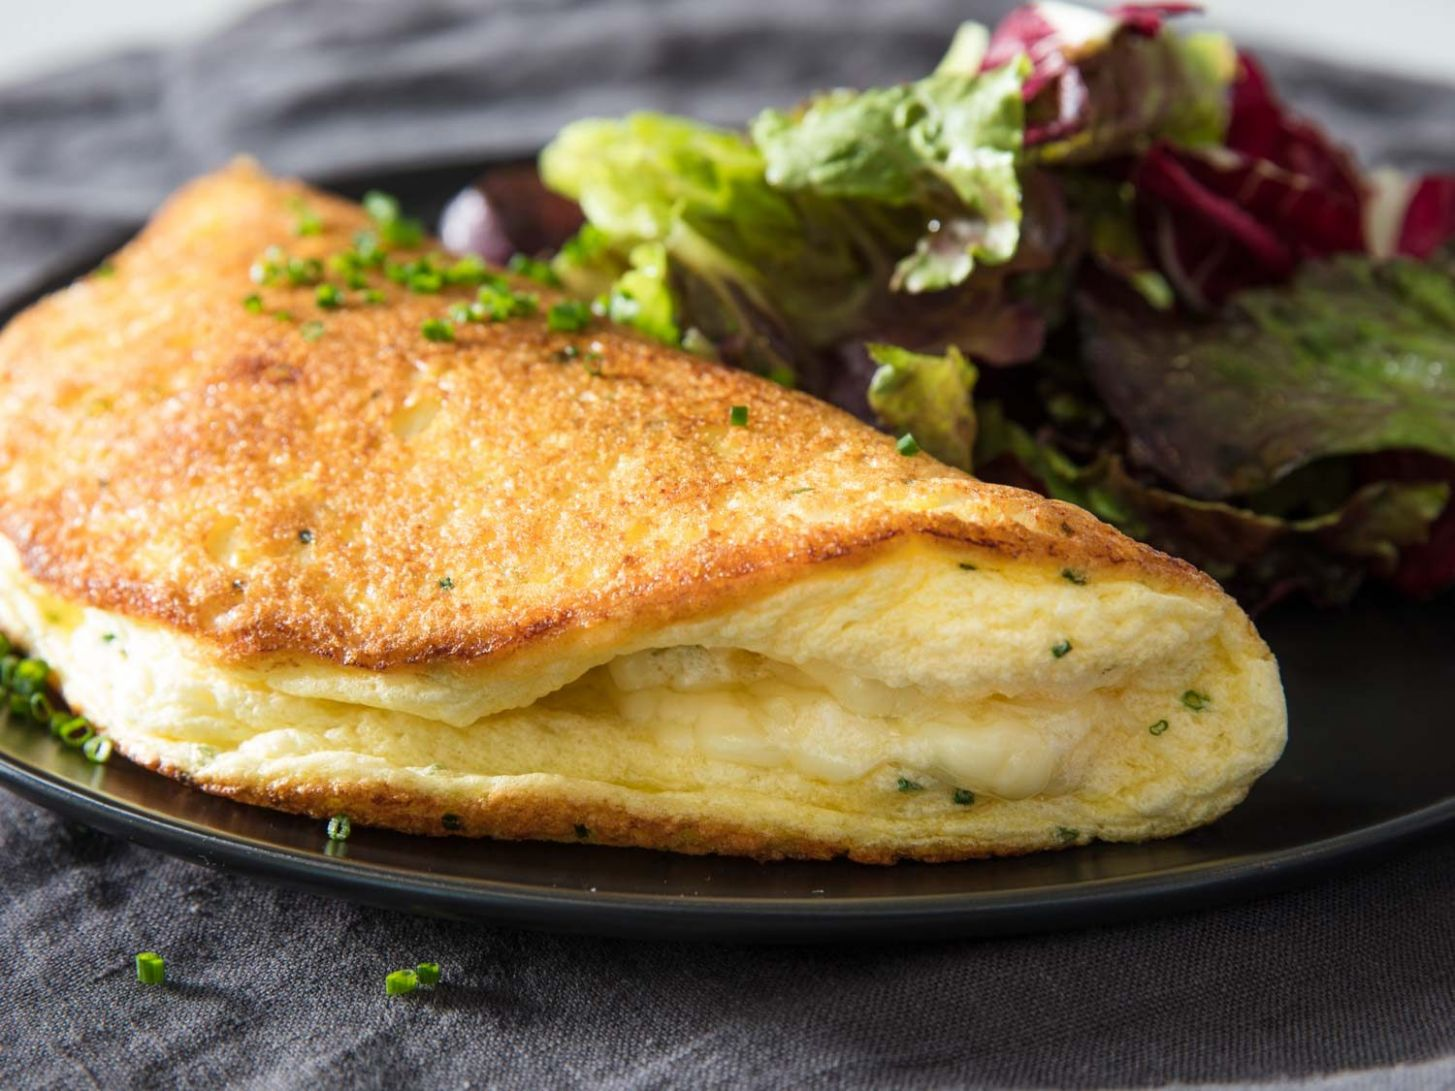 Soufflé Omelette With Cheese Recipe - Recipes Egg Omelet